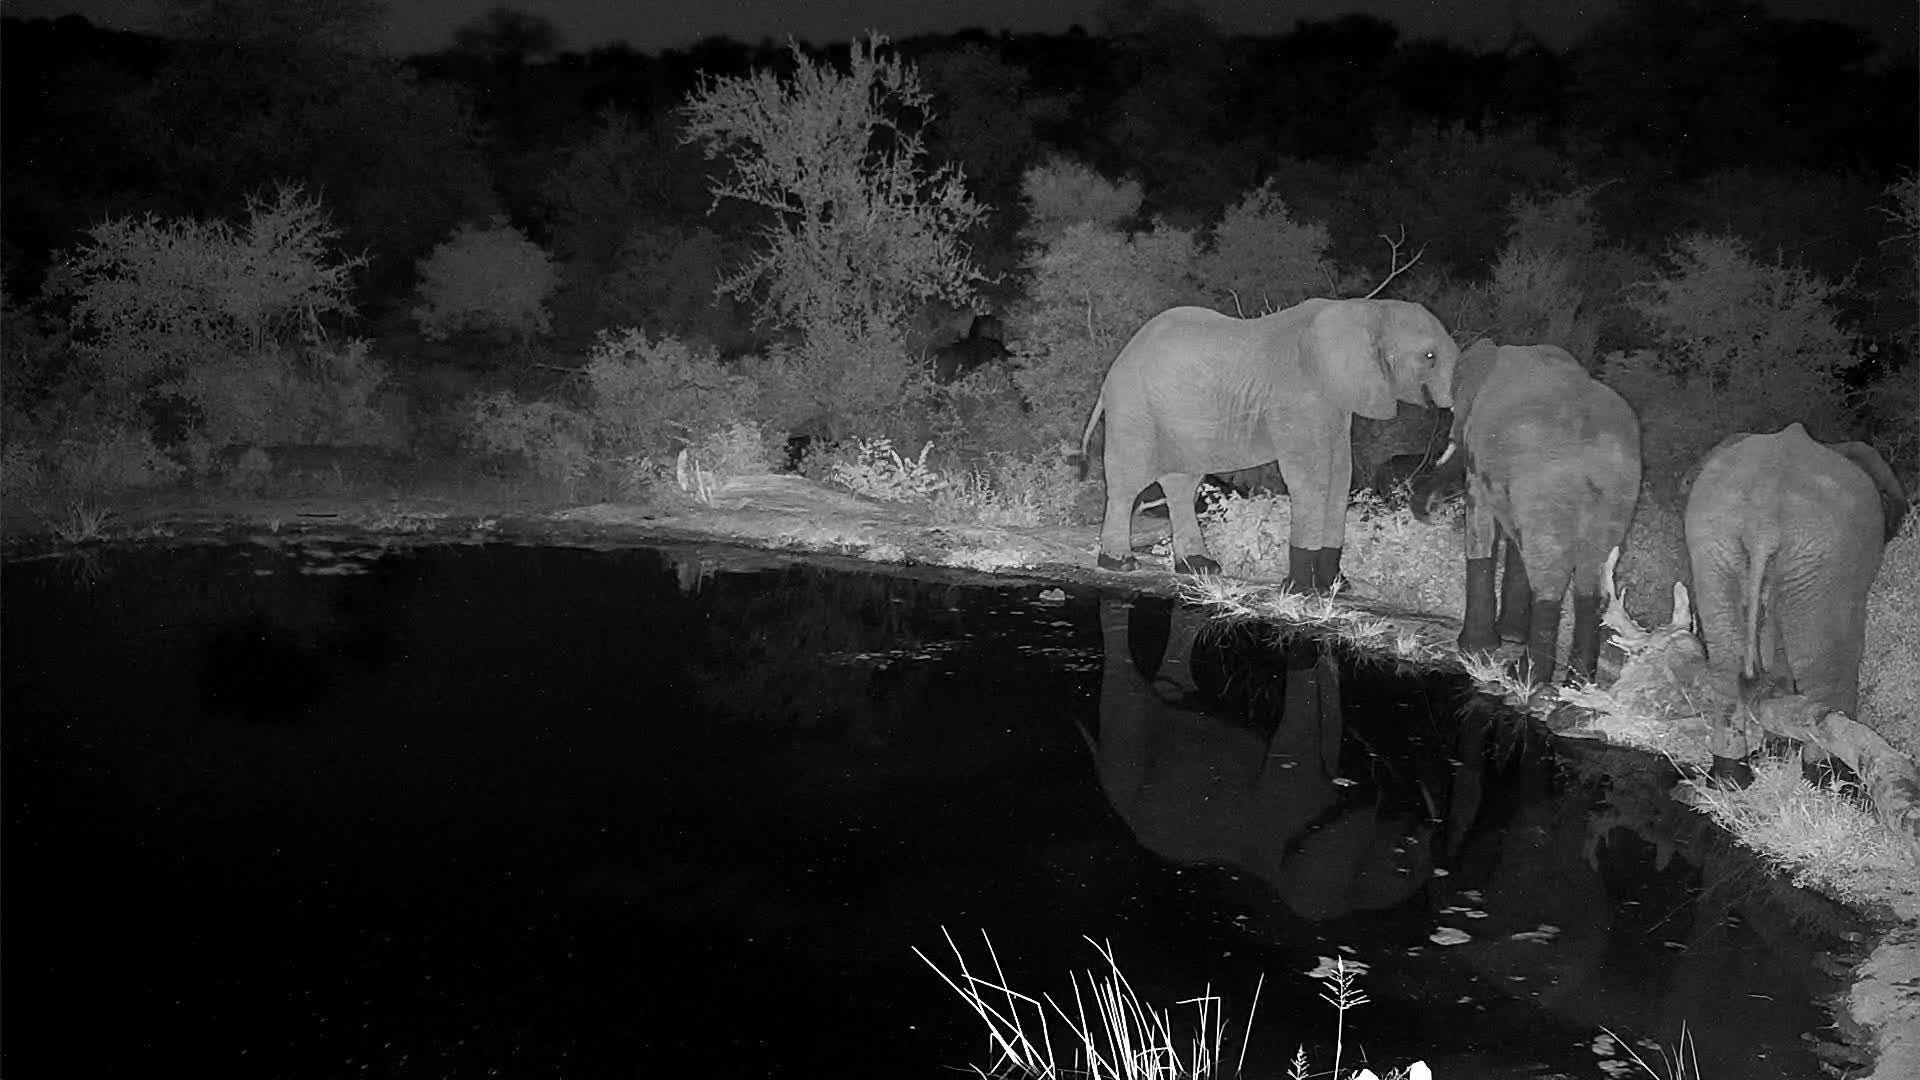 VIDEO: Cape Buffalo herd joined by Elephants at the waterhole Pt 2